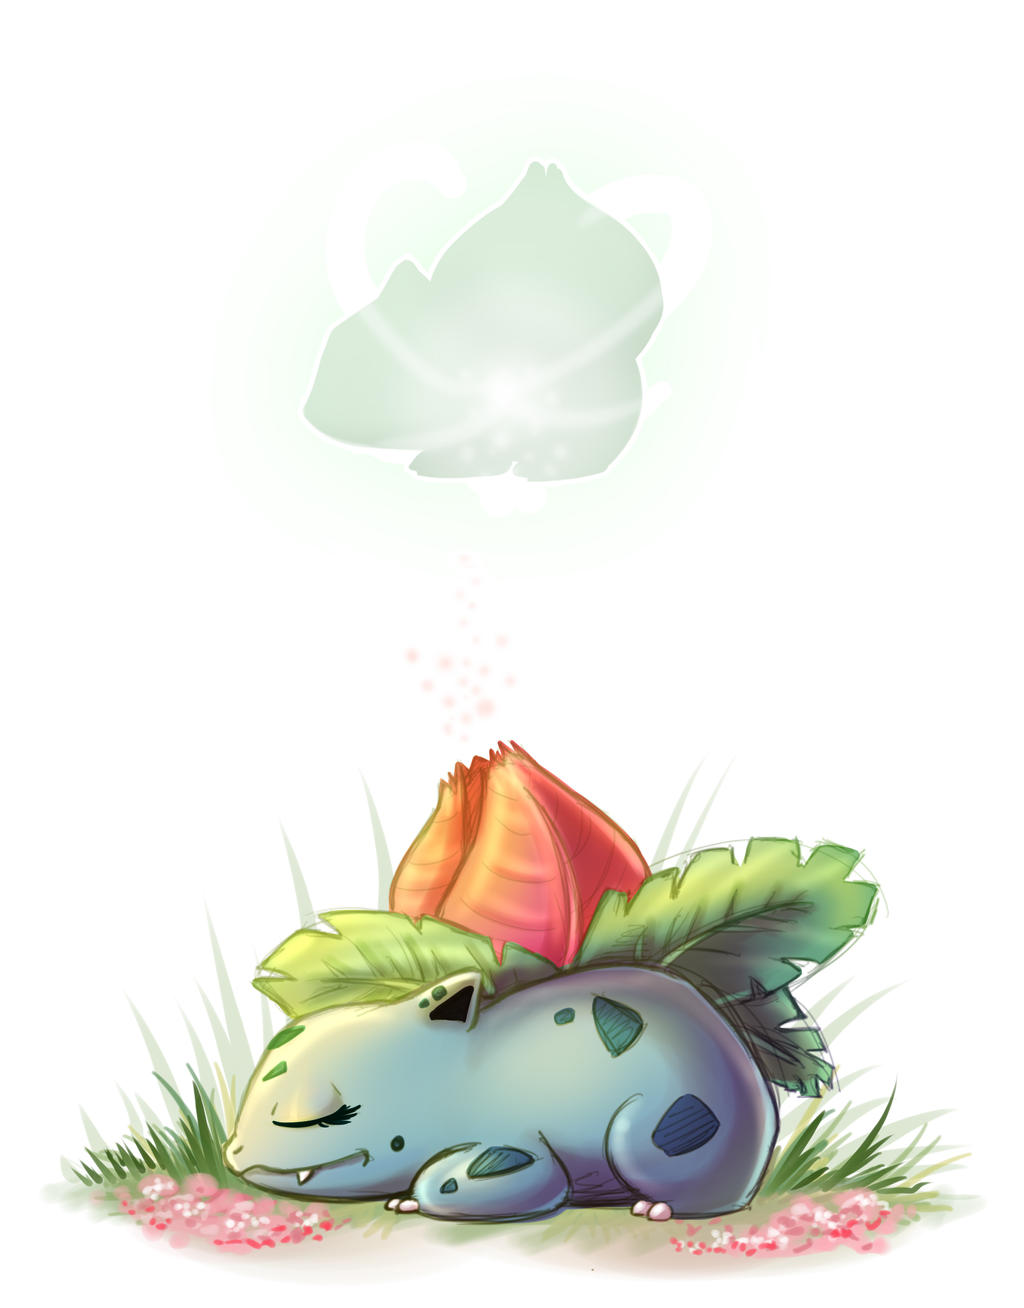 bulbasaur evolution wallpaper images - photo #39